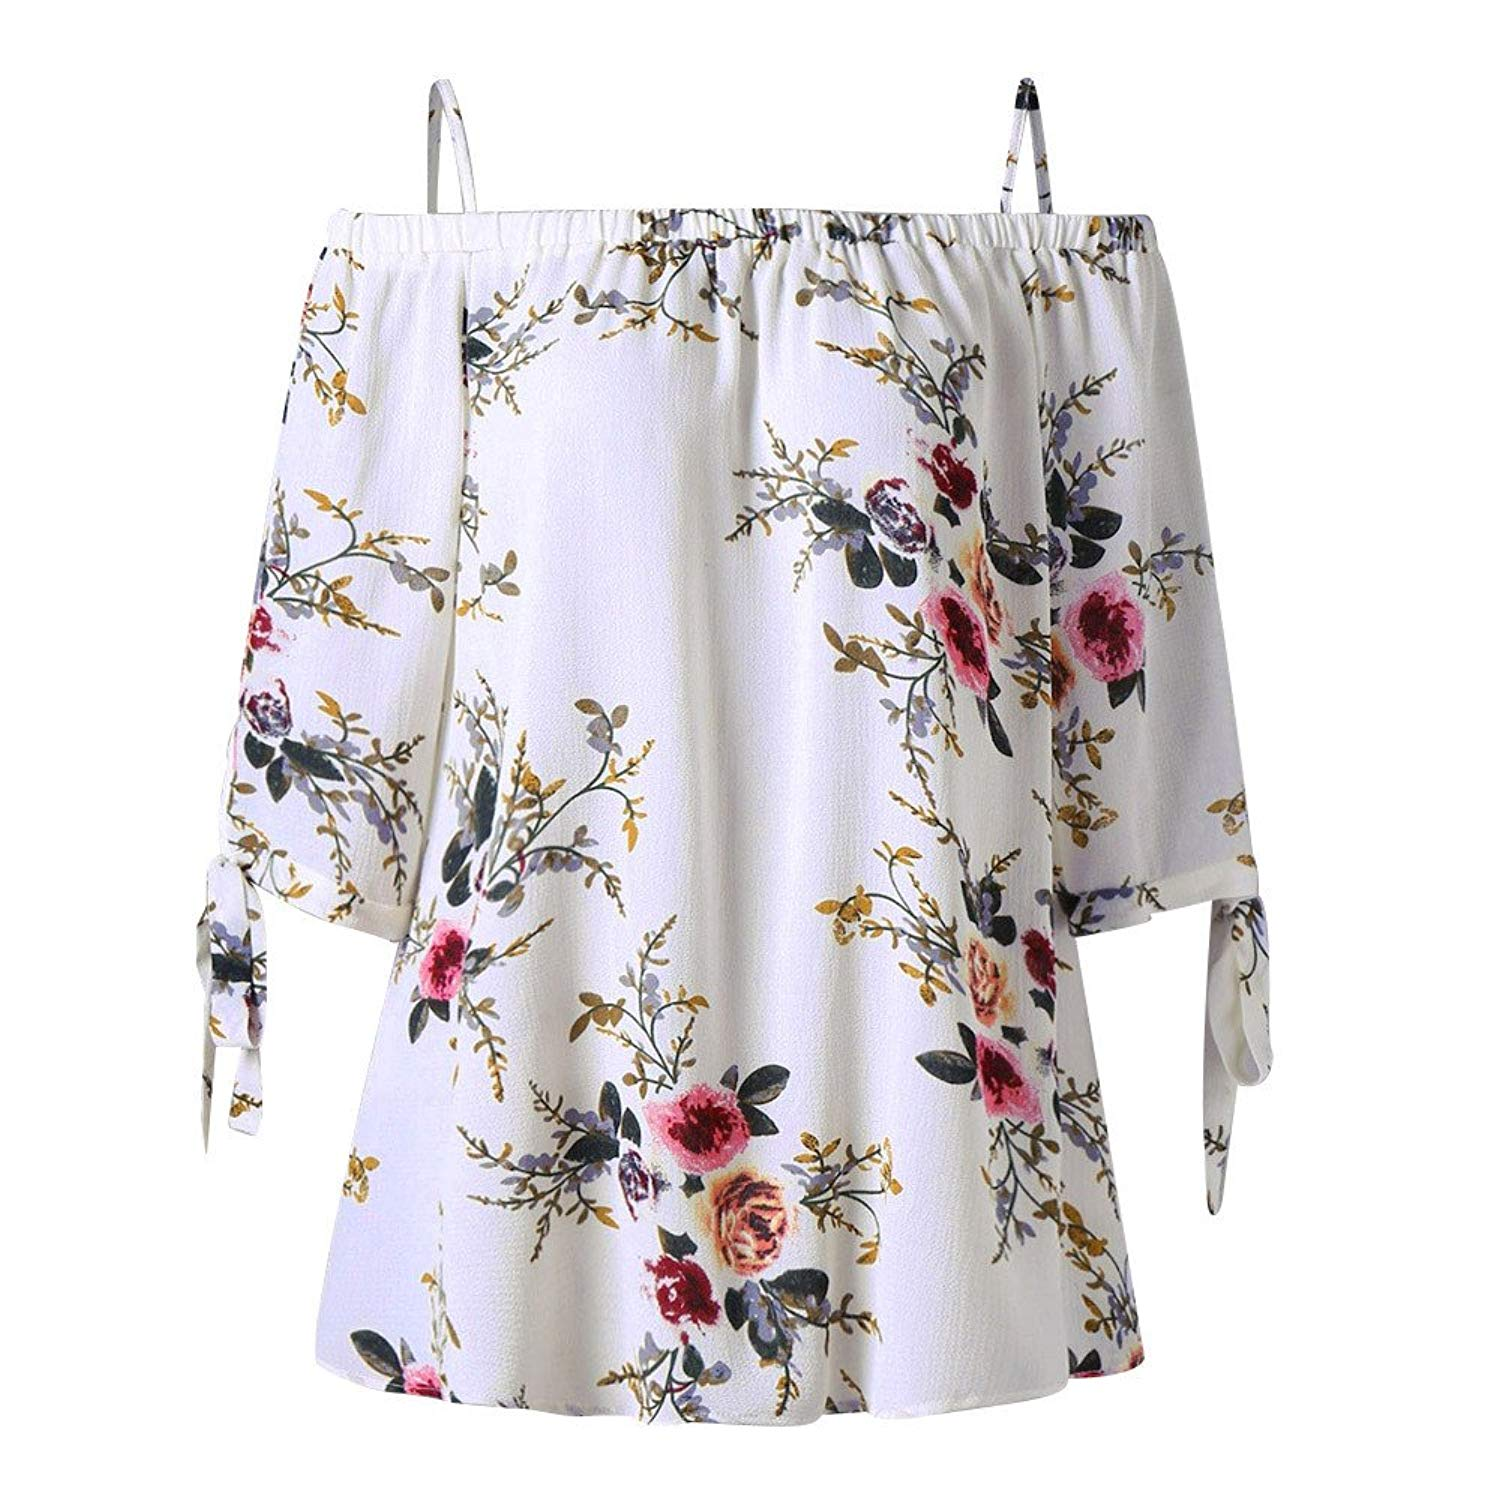 Clearance Women's Summer Off Shoulder Floral Self Tie Shirts Short Sleeve Casual Tunic T-Shirt Blouse Tops for Teen Girls